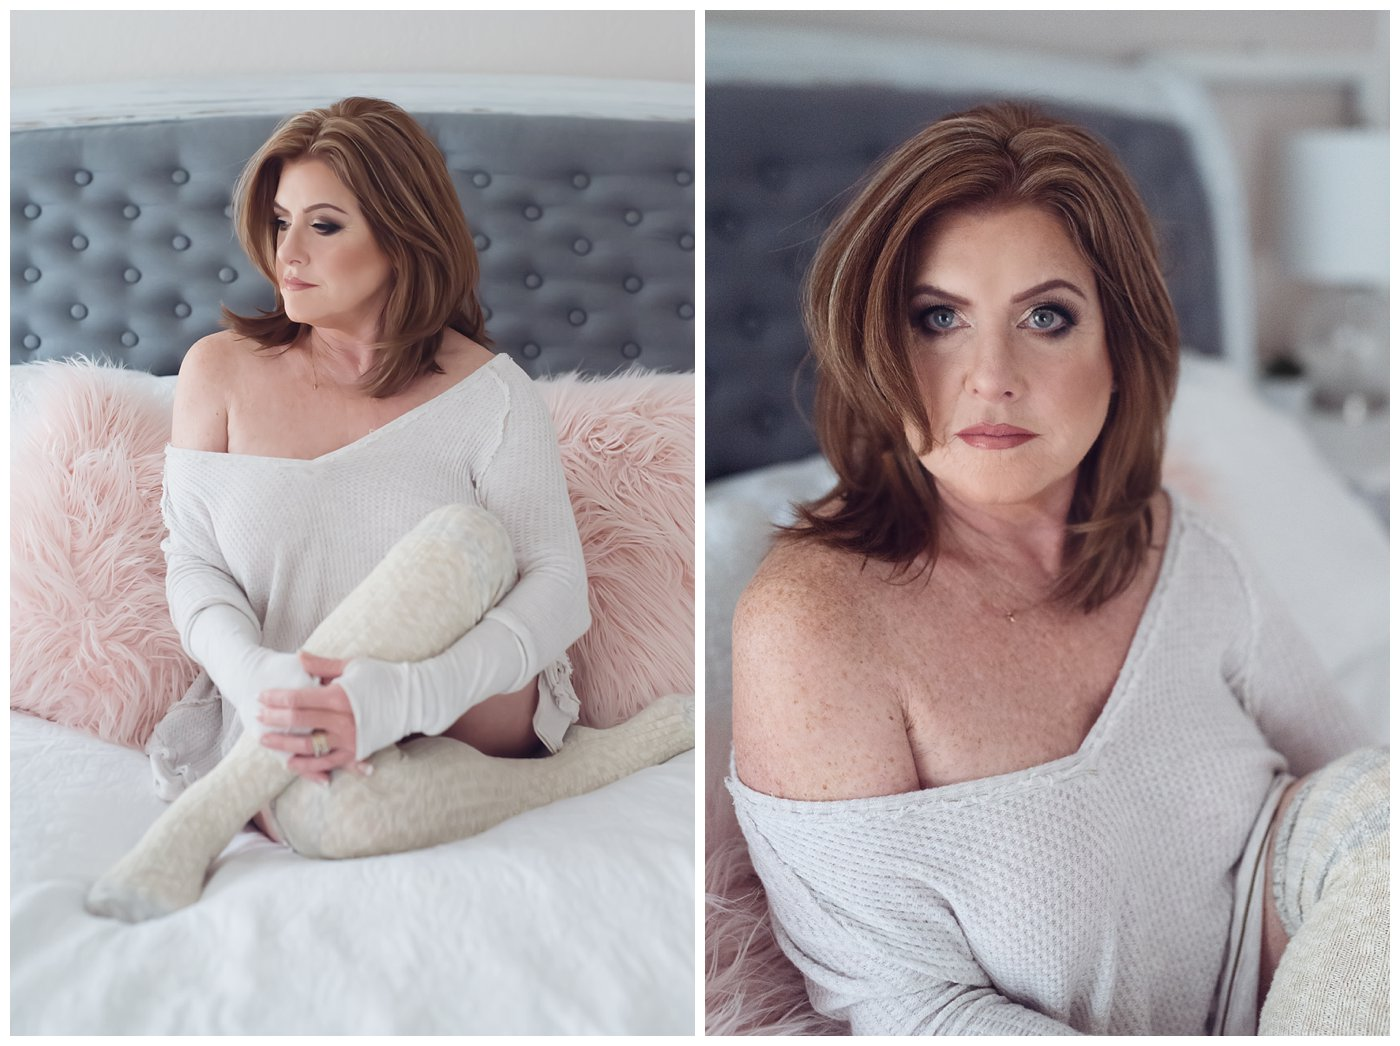 http://www.boudoirwithmary.com/wp-content/uploads/2017/11/2017-11-19_0051.jpg